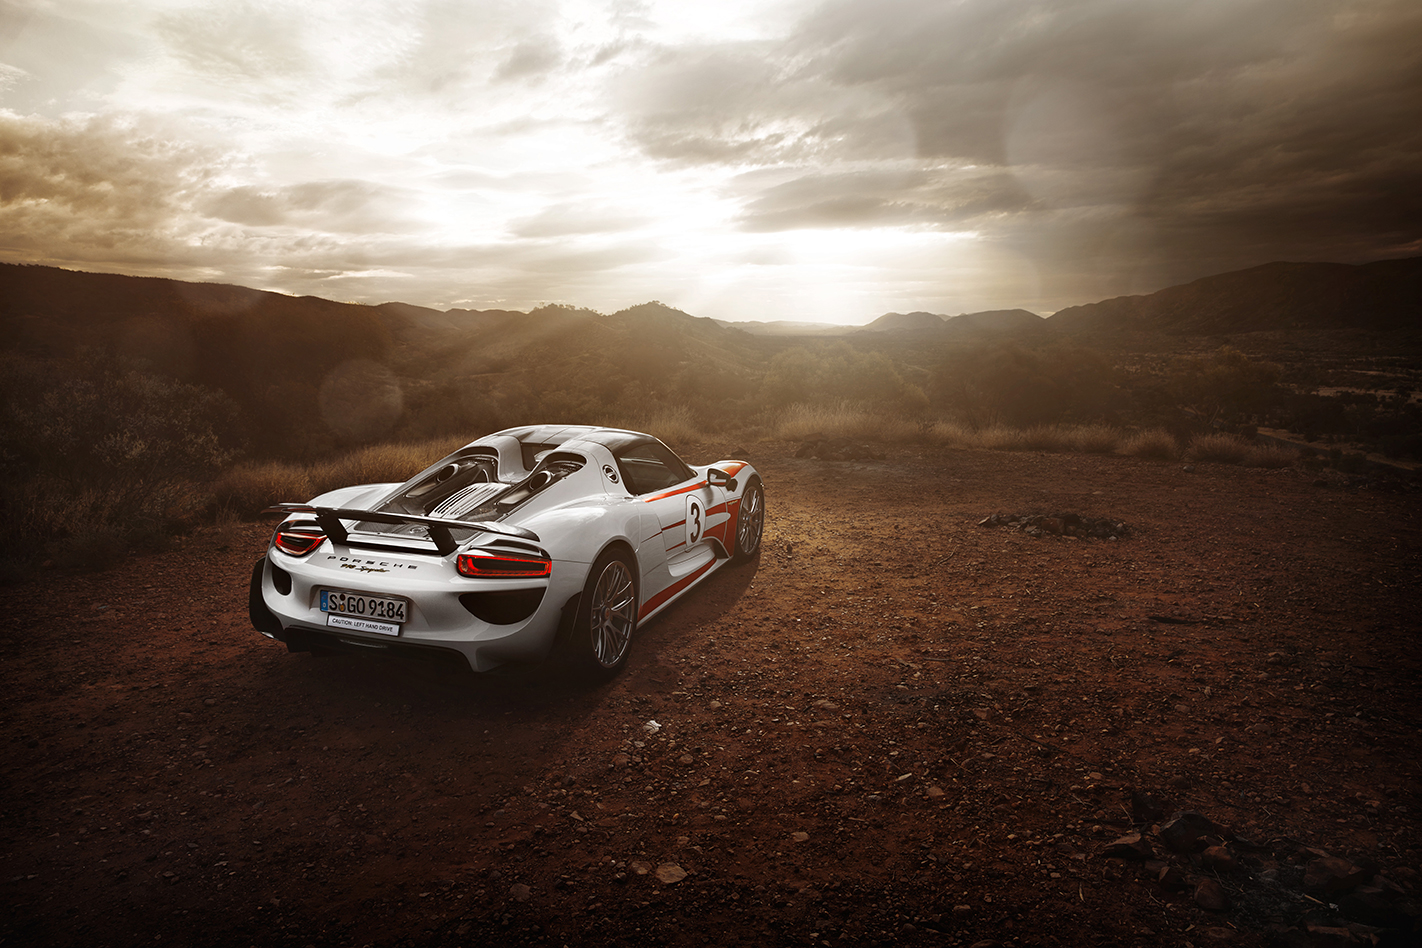 Porsche 918 in the outback